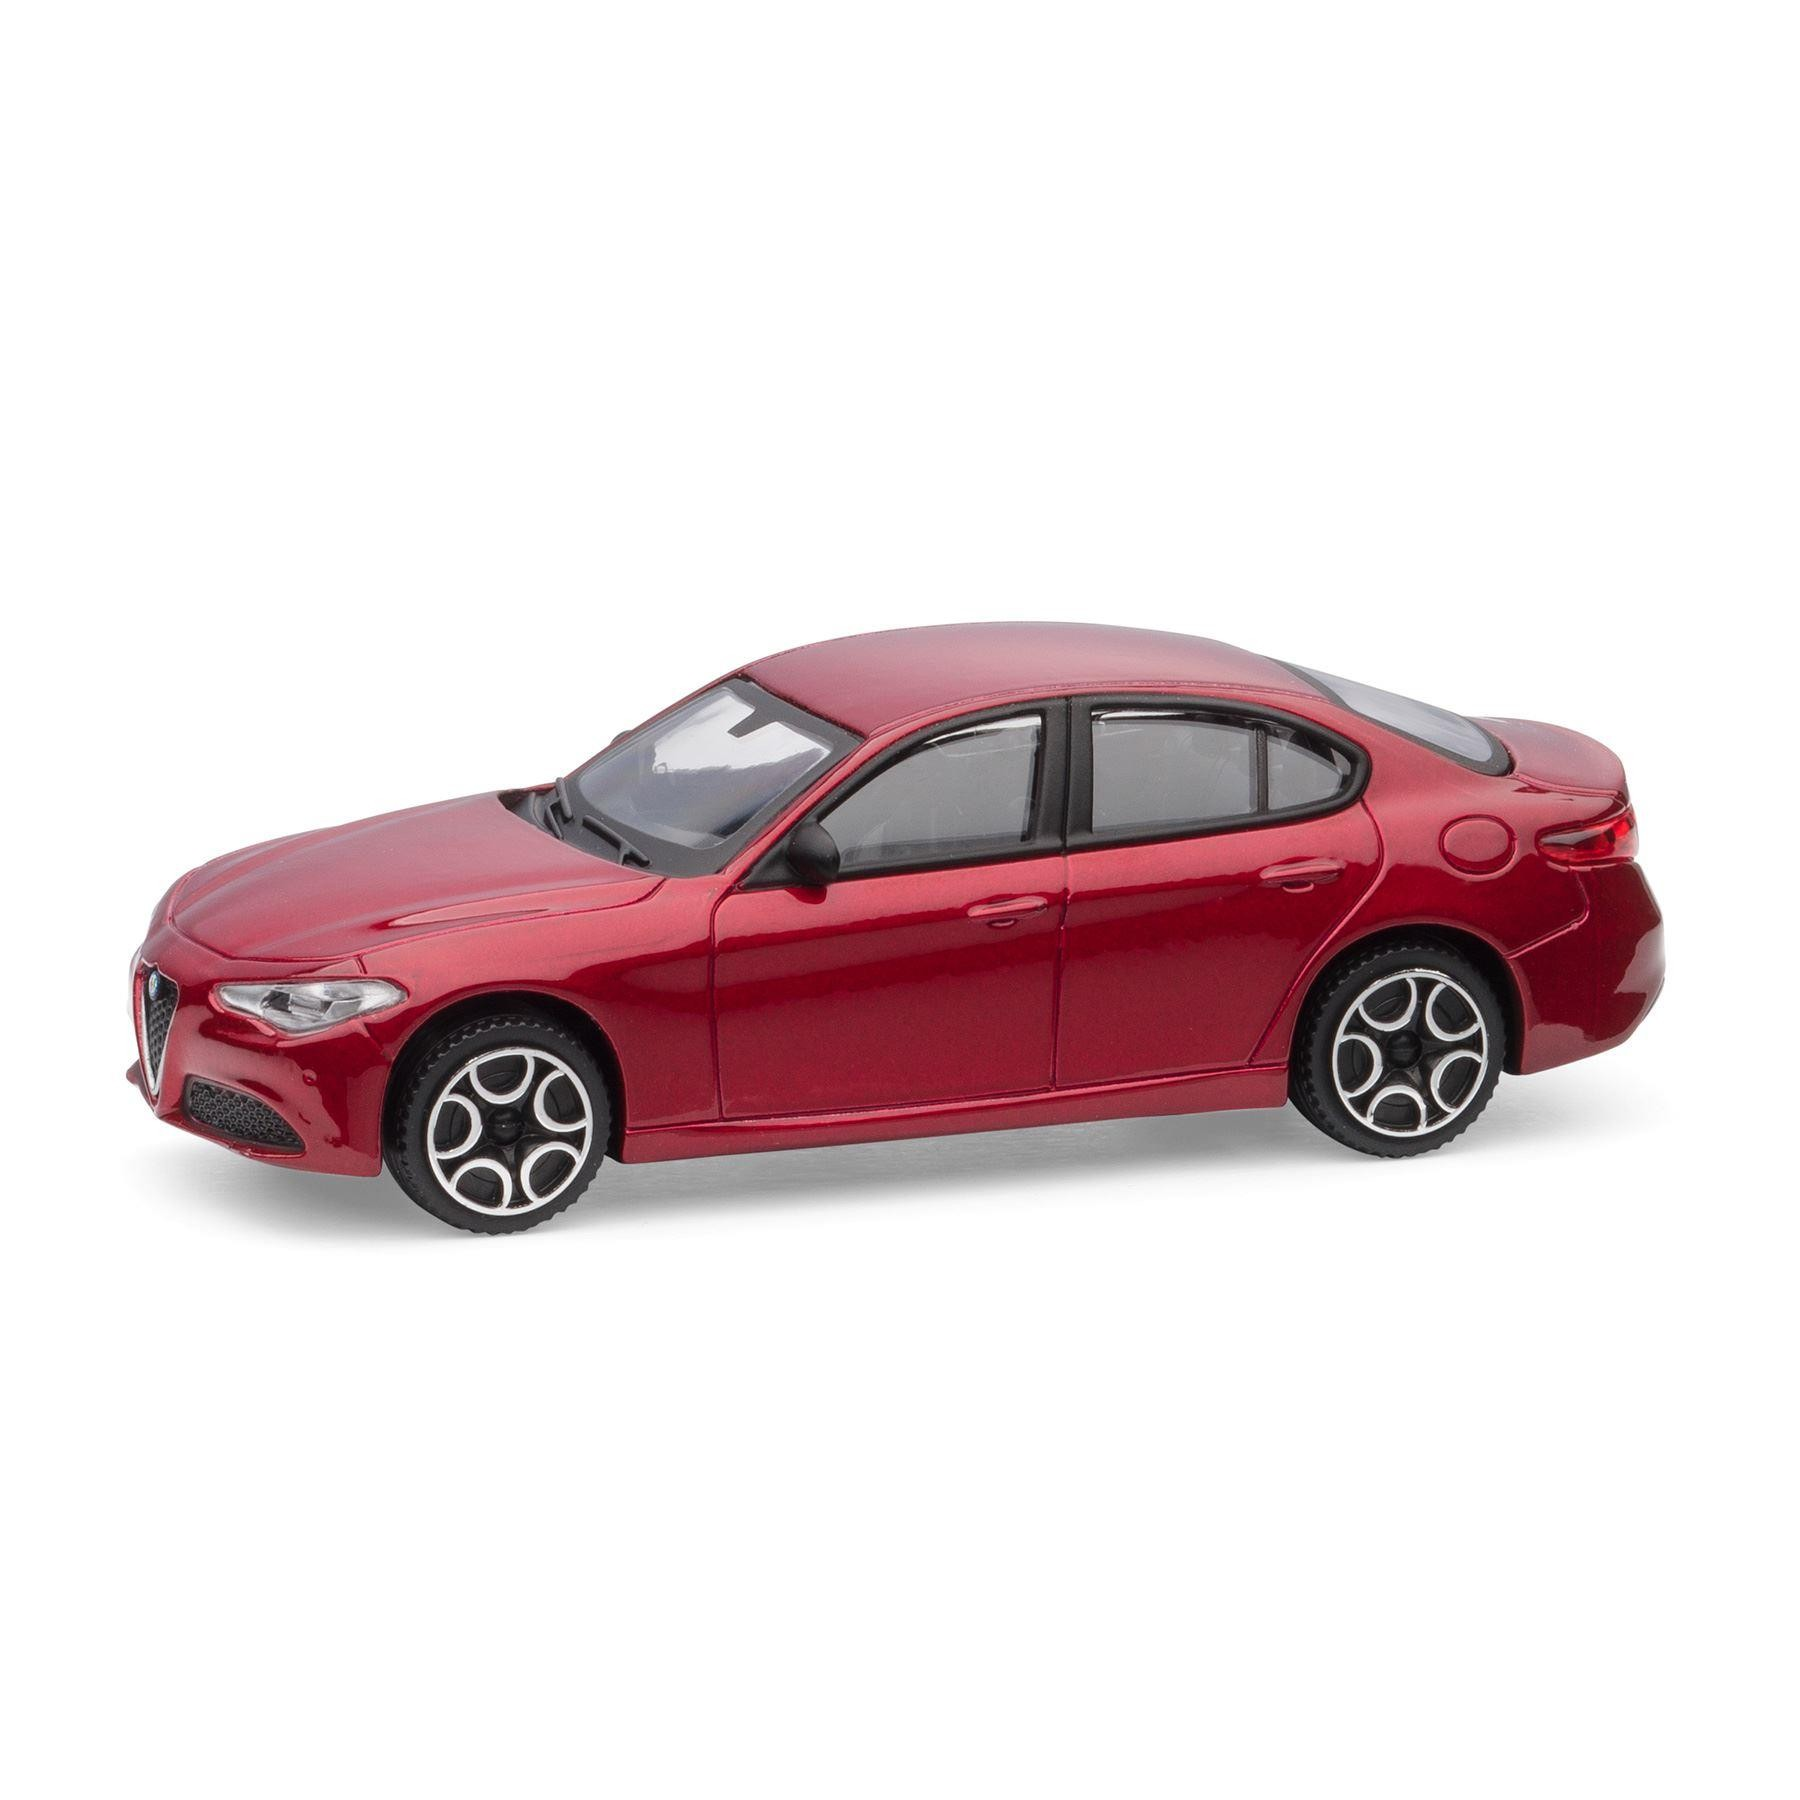 Giulia Car Model/Matchbox 1:43